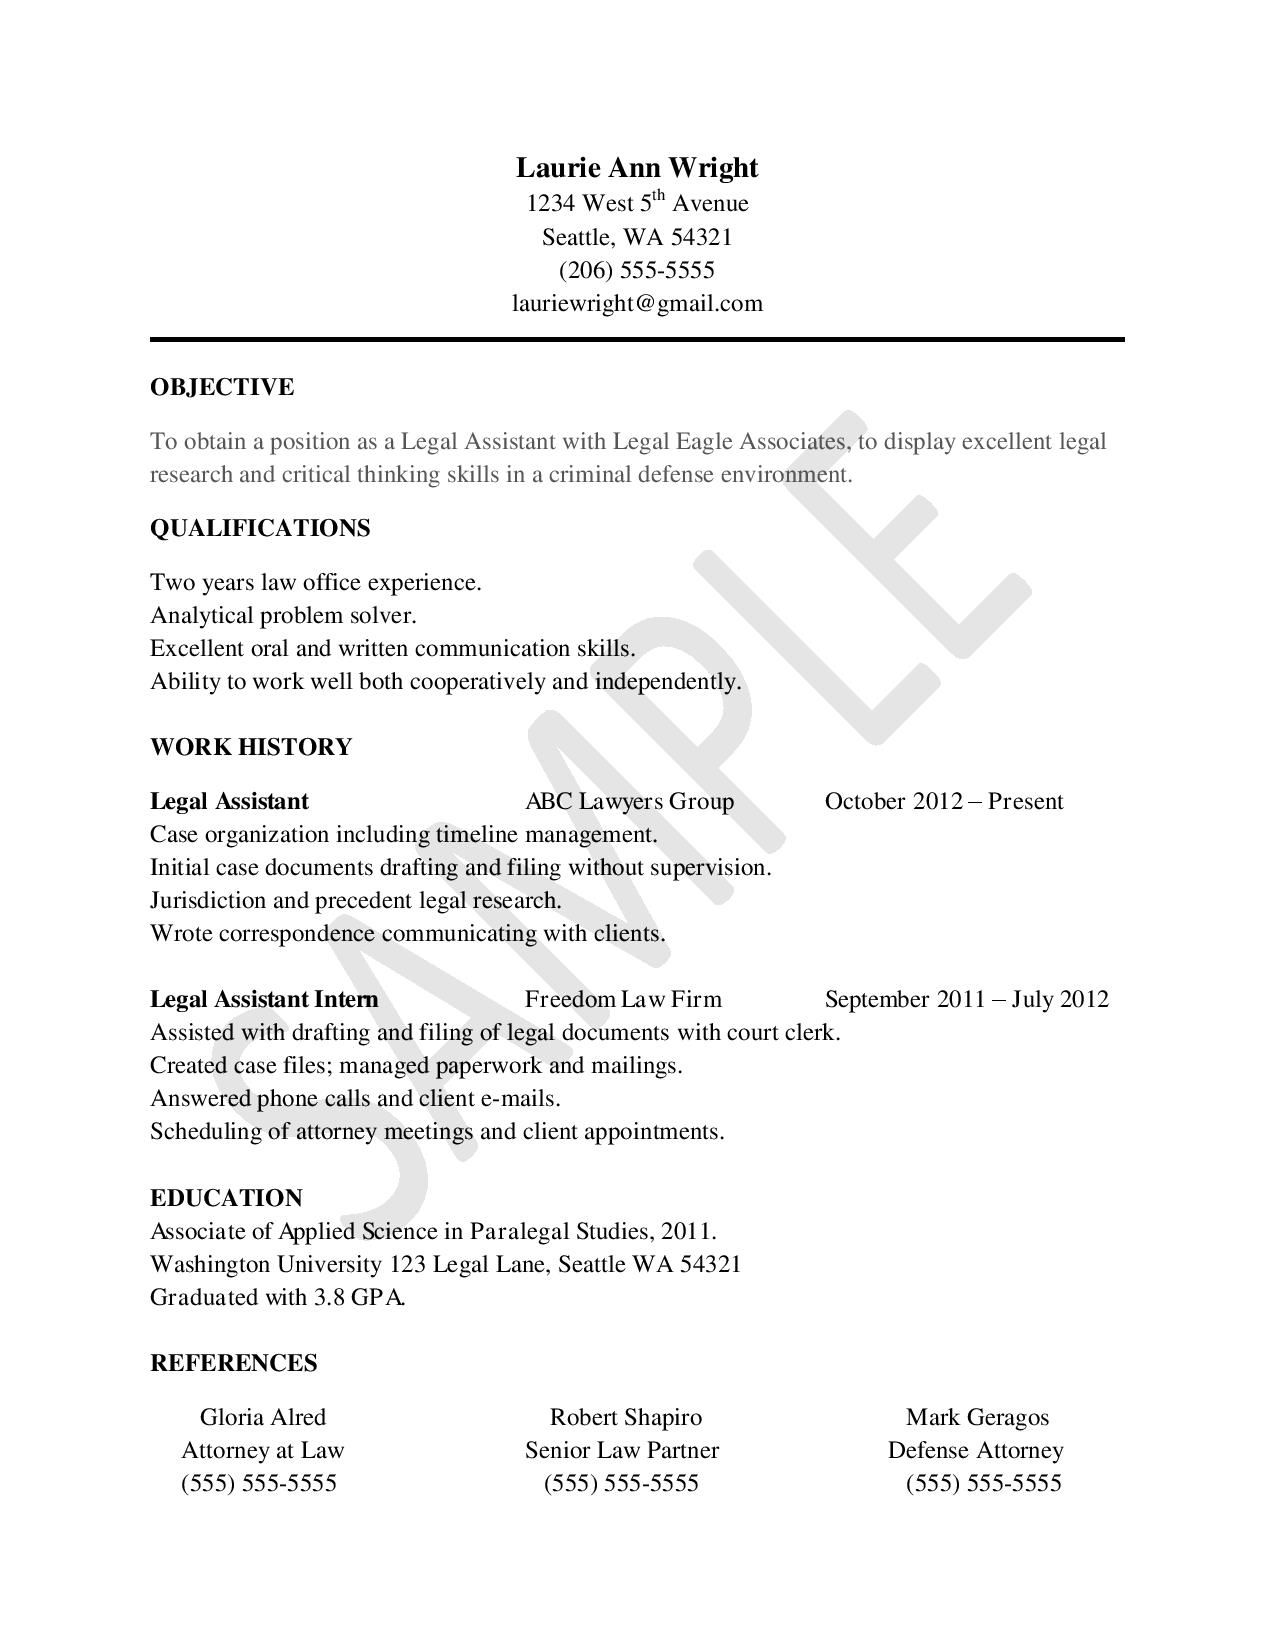 Finance Resume Objective Statements Examples - http ...